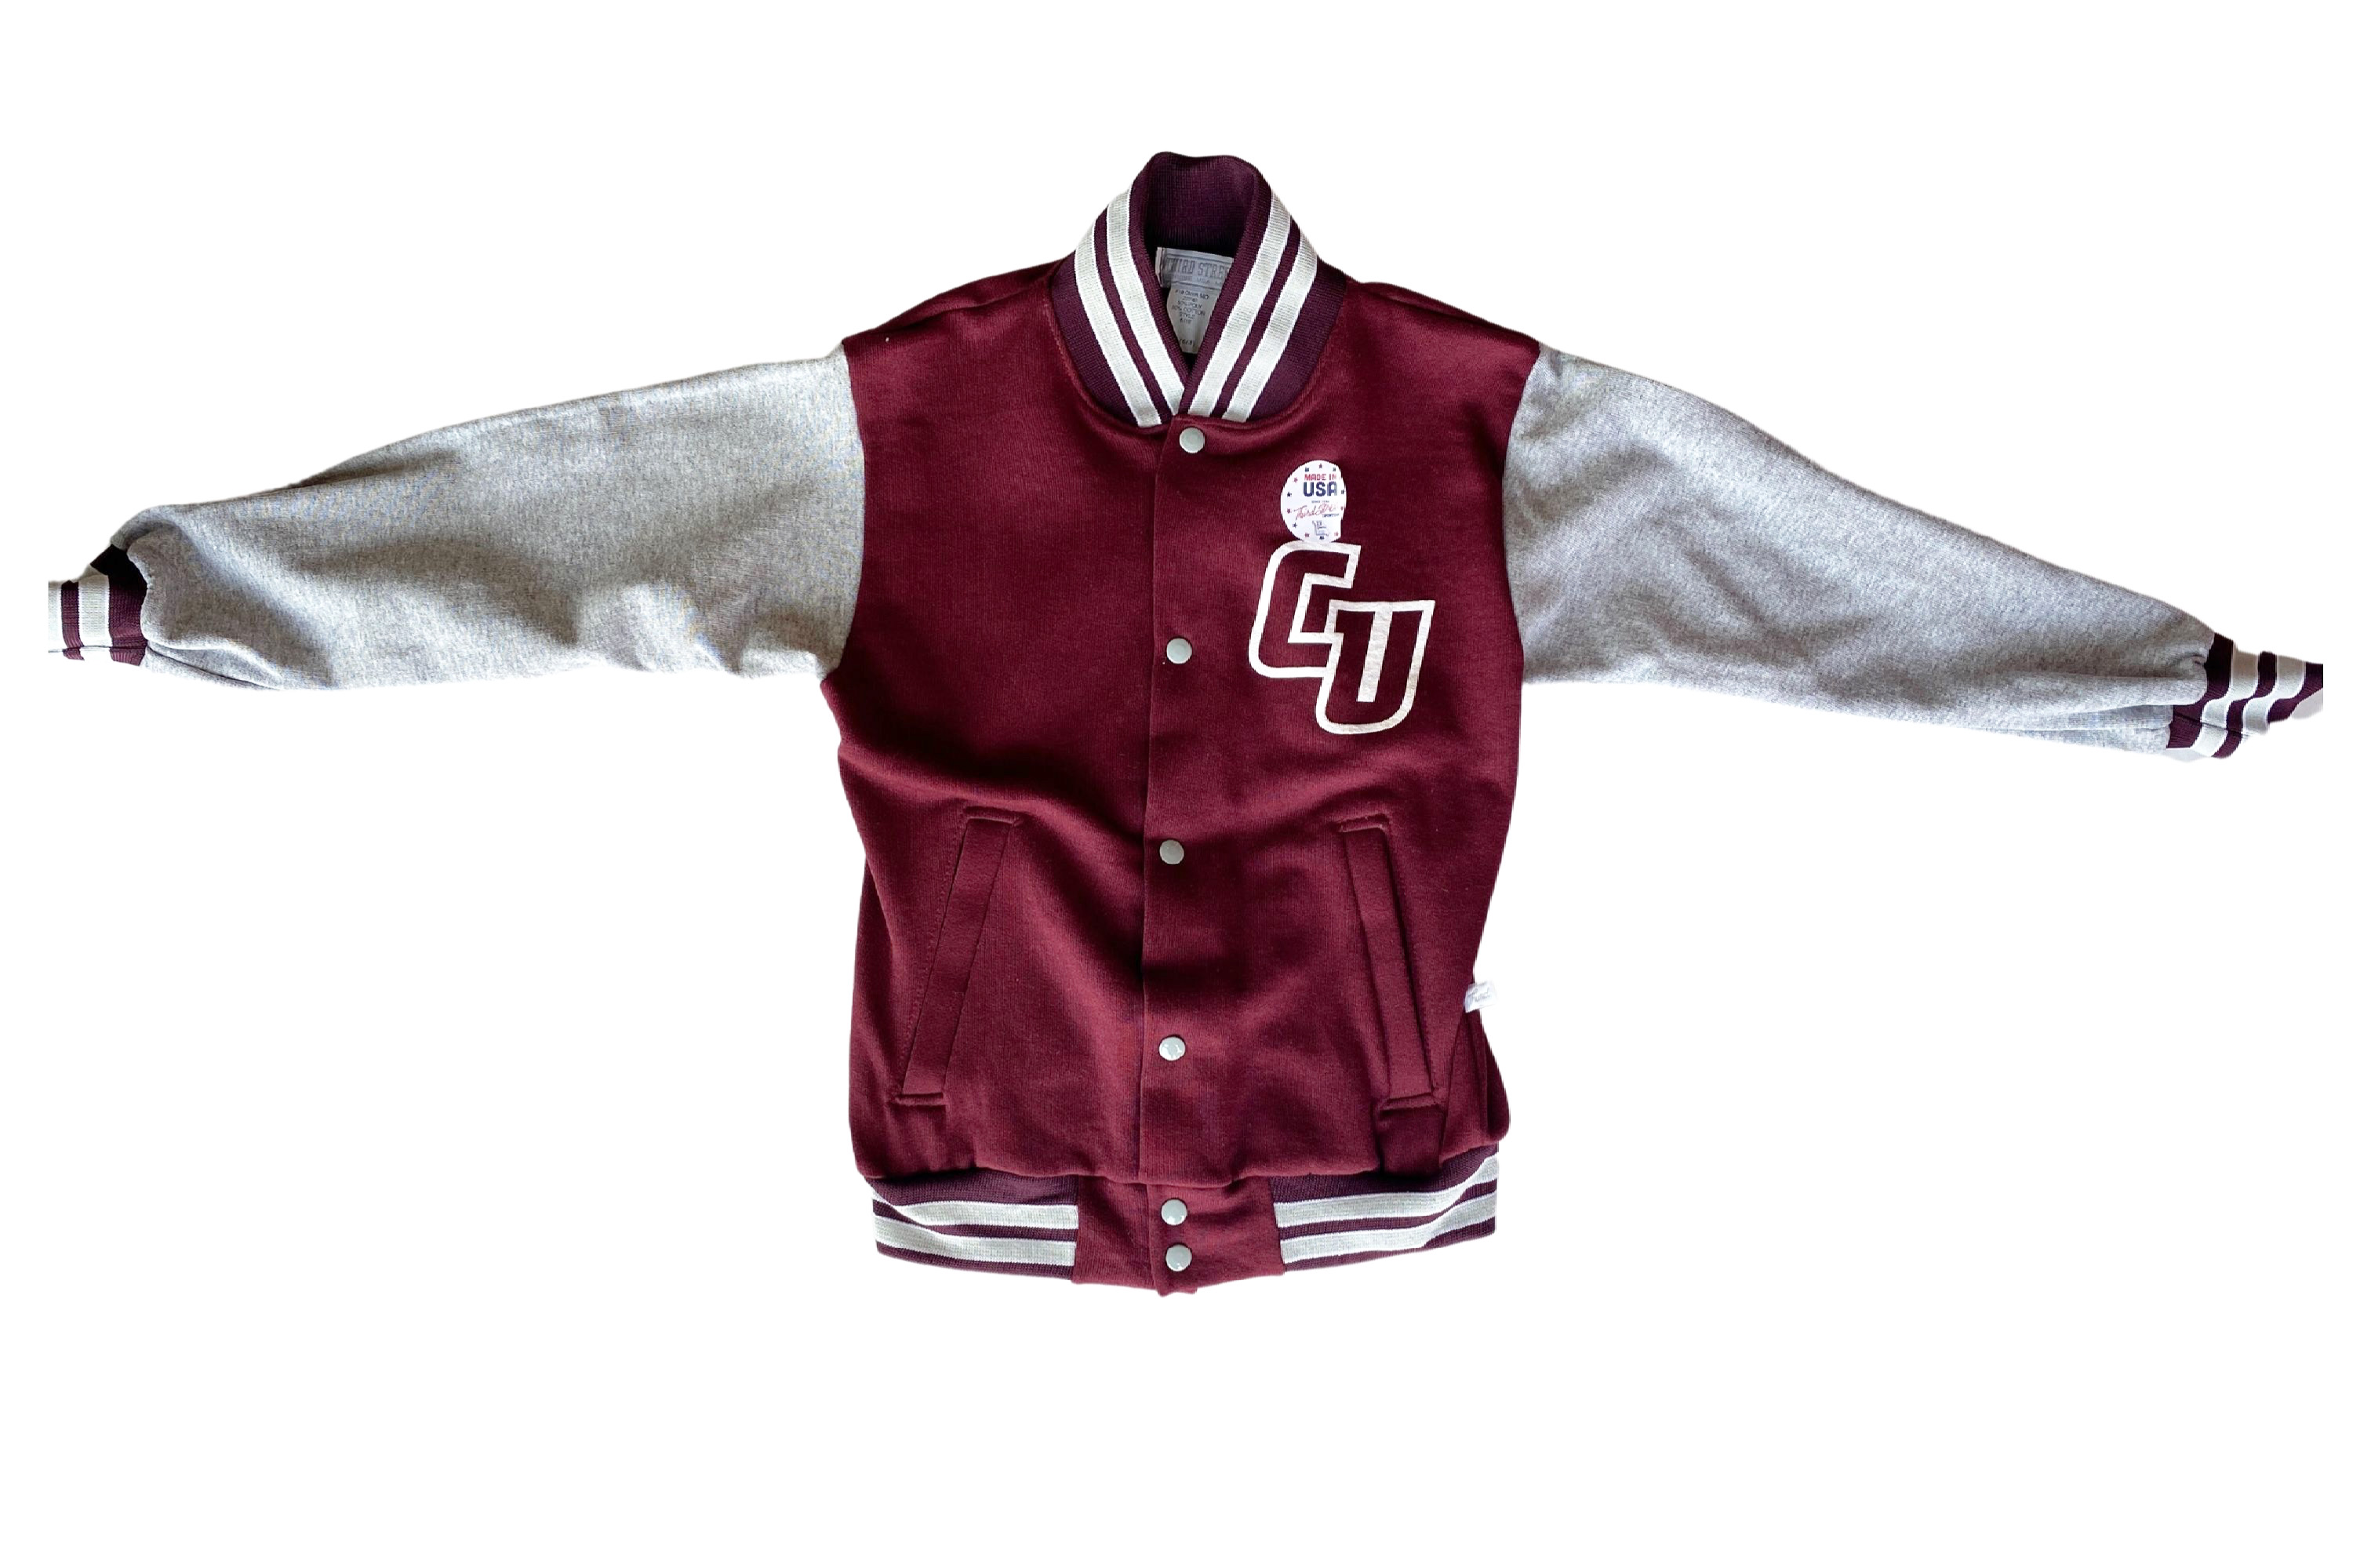 CU Toddler Varsity Jacket